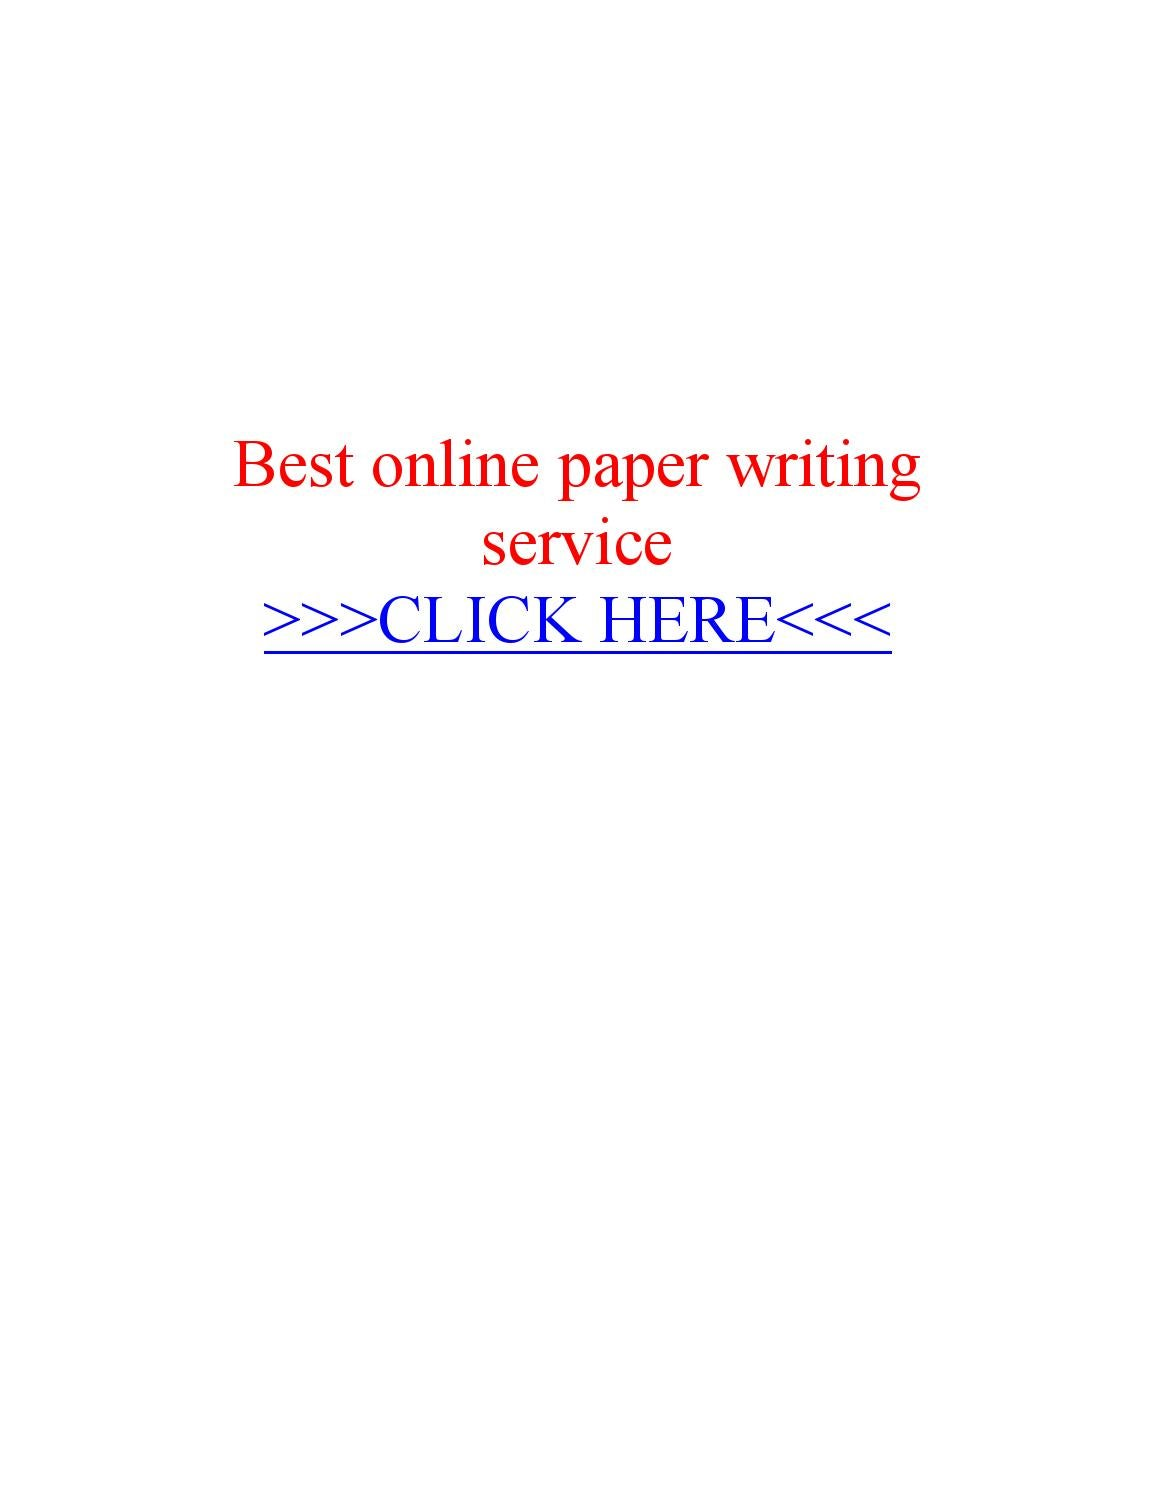 Best online will writing services